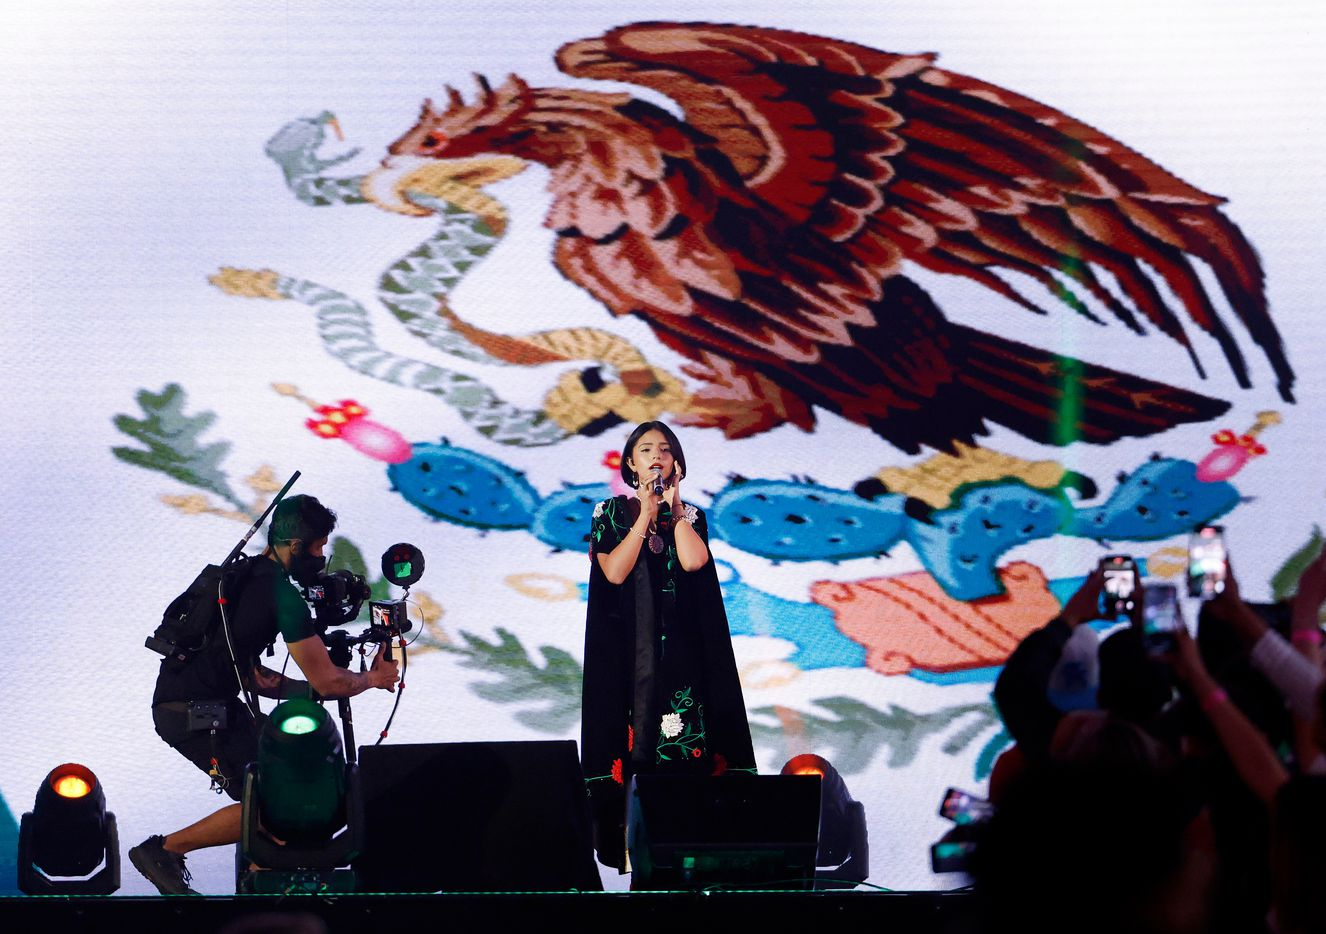 Angela Aguilar Alvarez, 17, performed the Mexican national anthem, Himno Nacional Mexicano, before the Canelo Alvarez/Billy Joe Saunders unified super middleweight title fight at AT&T Stadium in Arlington, Saturday, May 8, 2021. (Tom Fox/The Dallas Morning News)